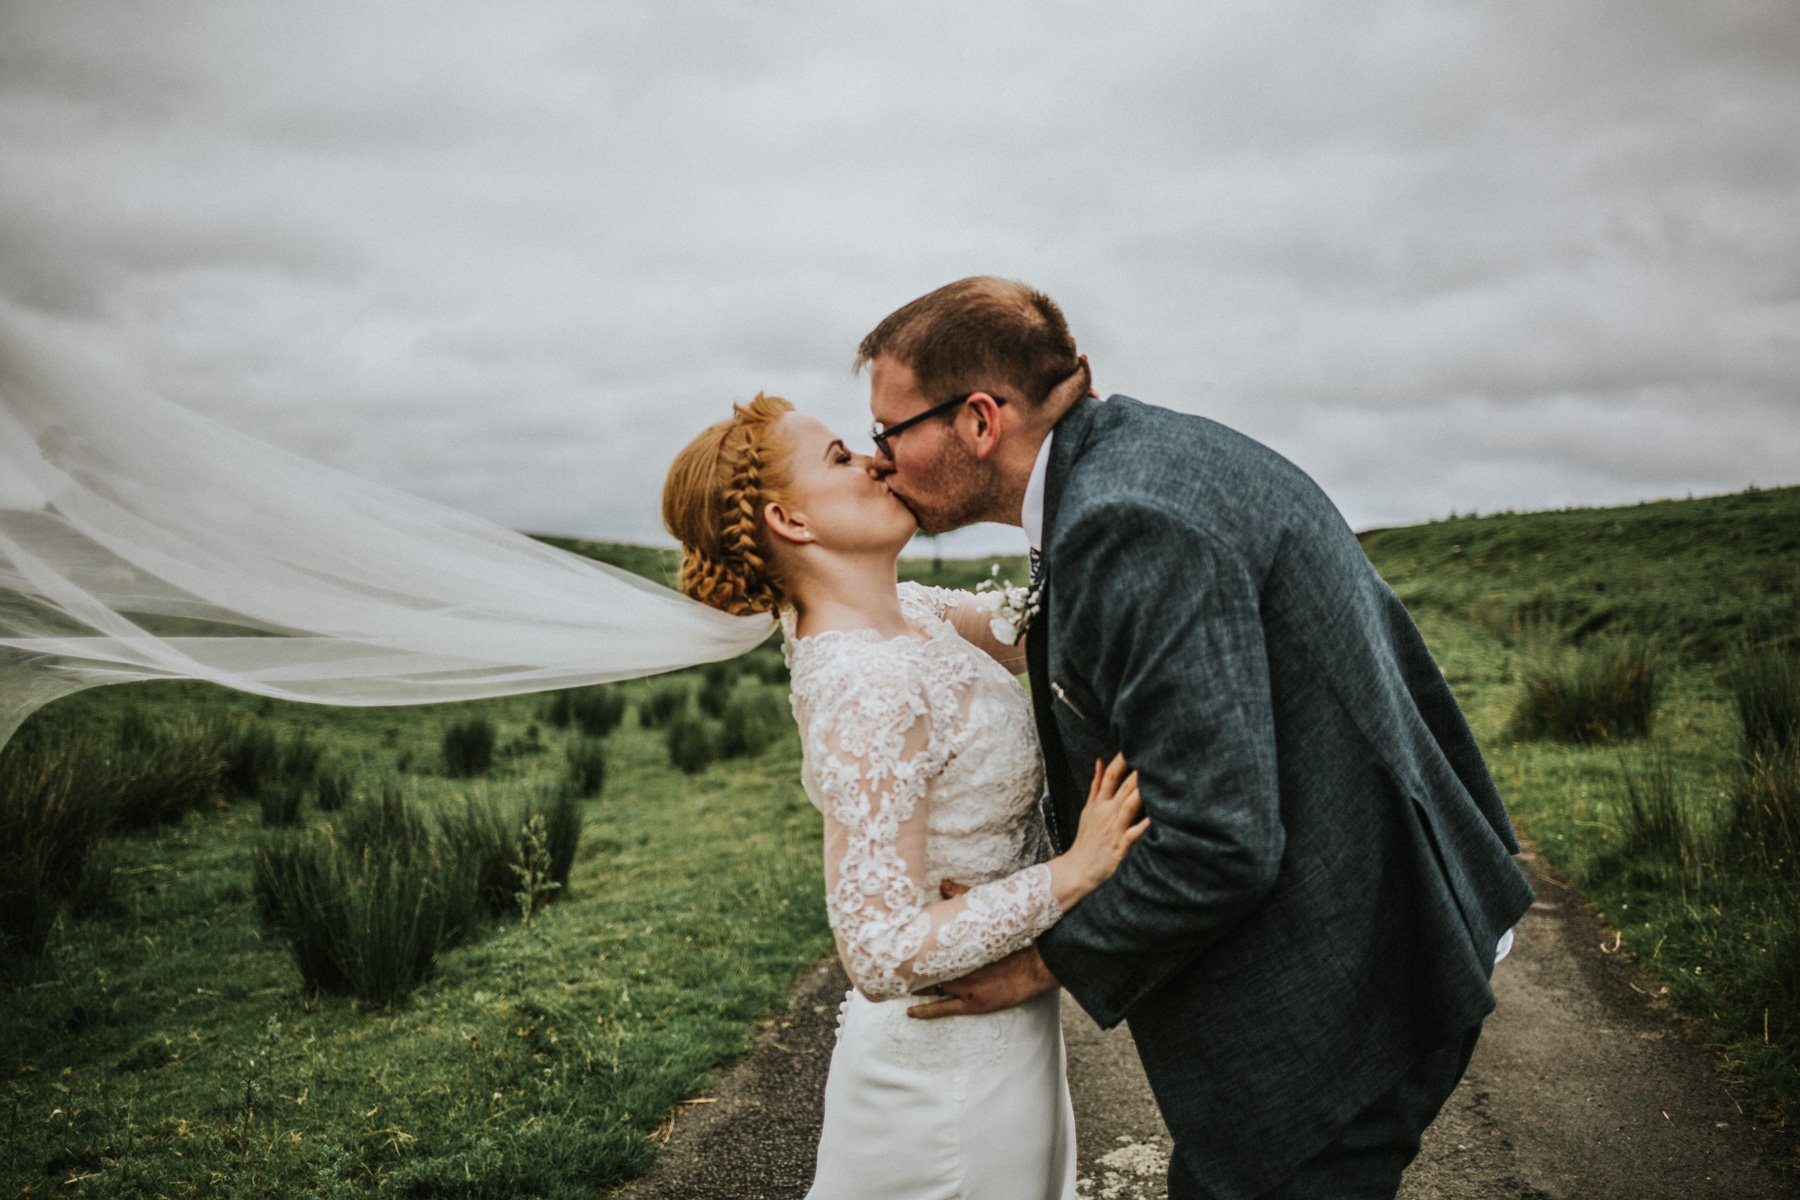 North East Wedding Photographers - cathedral veil blowing in the wind